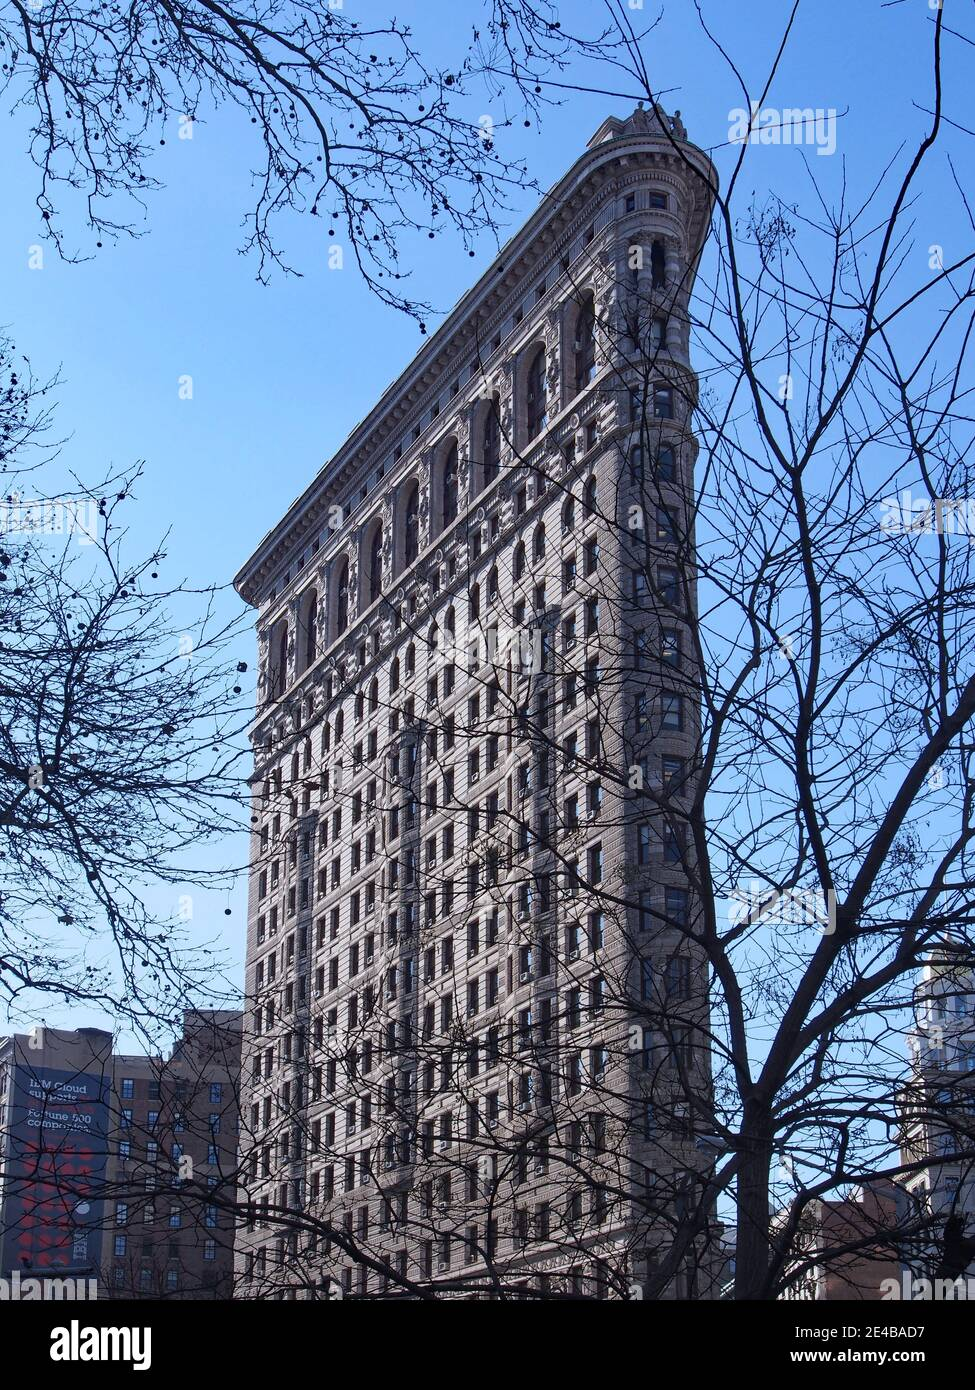 New York City, USA - December 16, 2013:  The narrow end of the iconic Flatiron Building, viewed from Madison Square Park Stock Photo